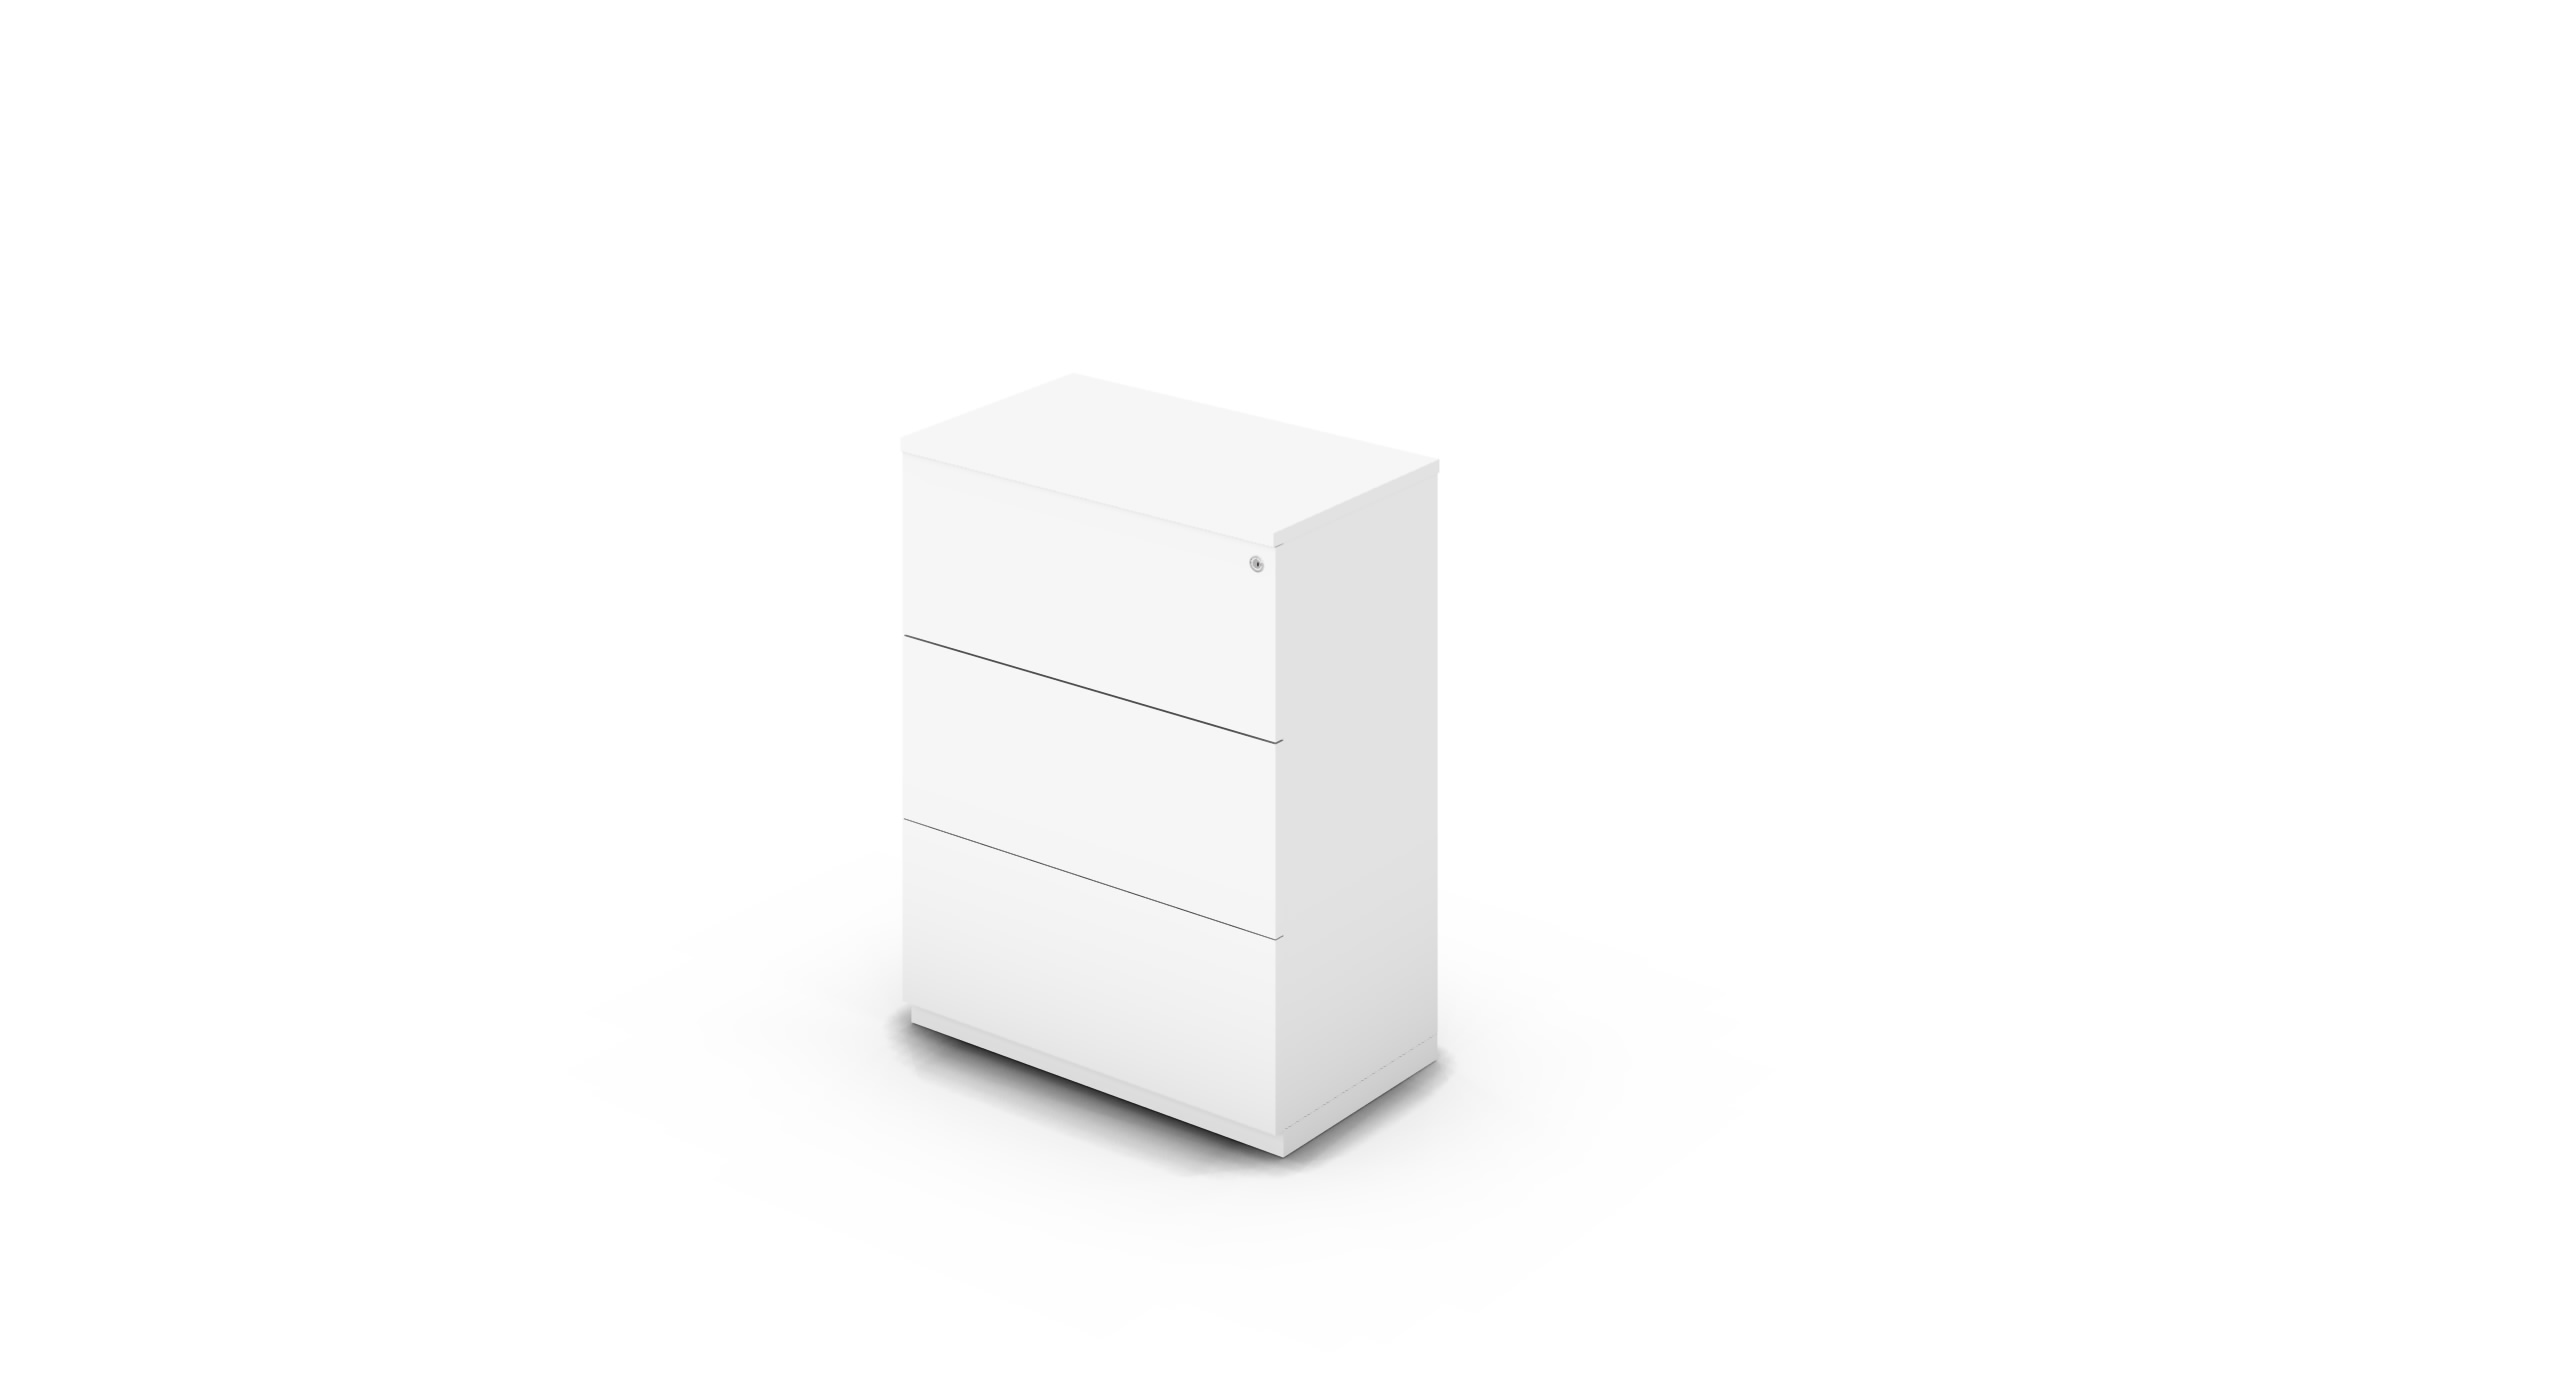 Cabinet_800x450x1125_DR_White_Push_WithCylinder